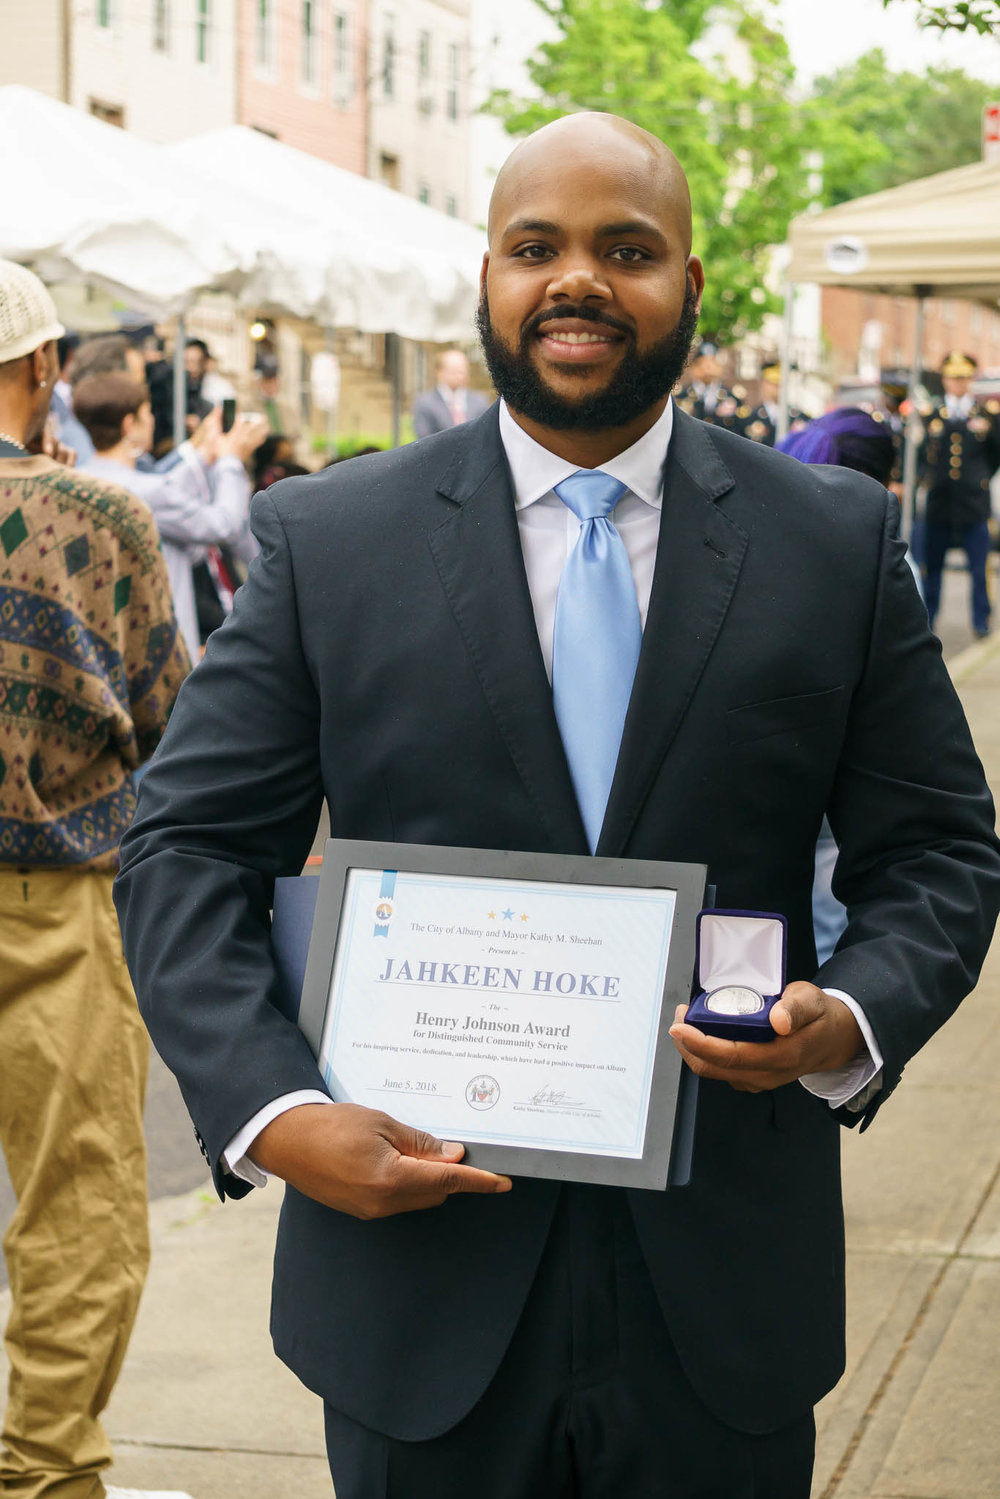 Jahkeen Hoke, winner of the second annual Henry Johnson Award for Distinguished Community Service (holding test strike for Sgt. Henry Johnson silver commemorative).